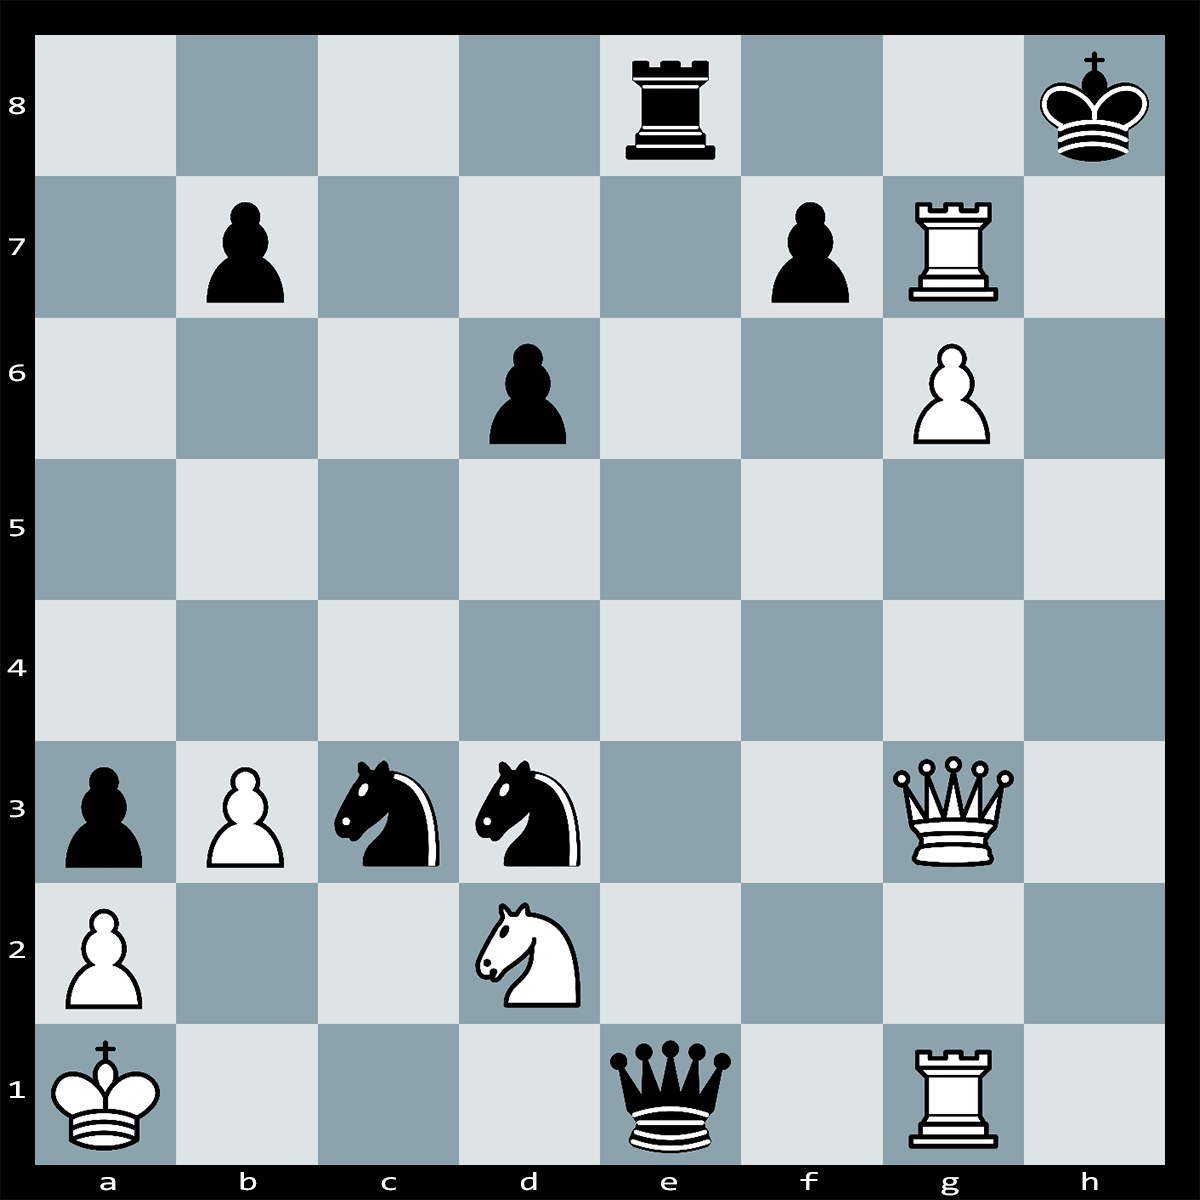 Chess Puzzle #327 | In this complex-looking position, What should white play, grab the queen?